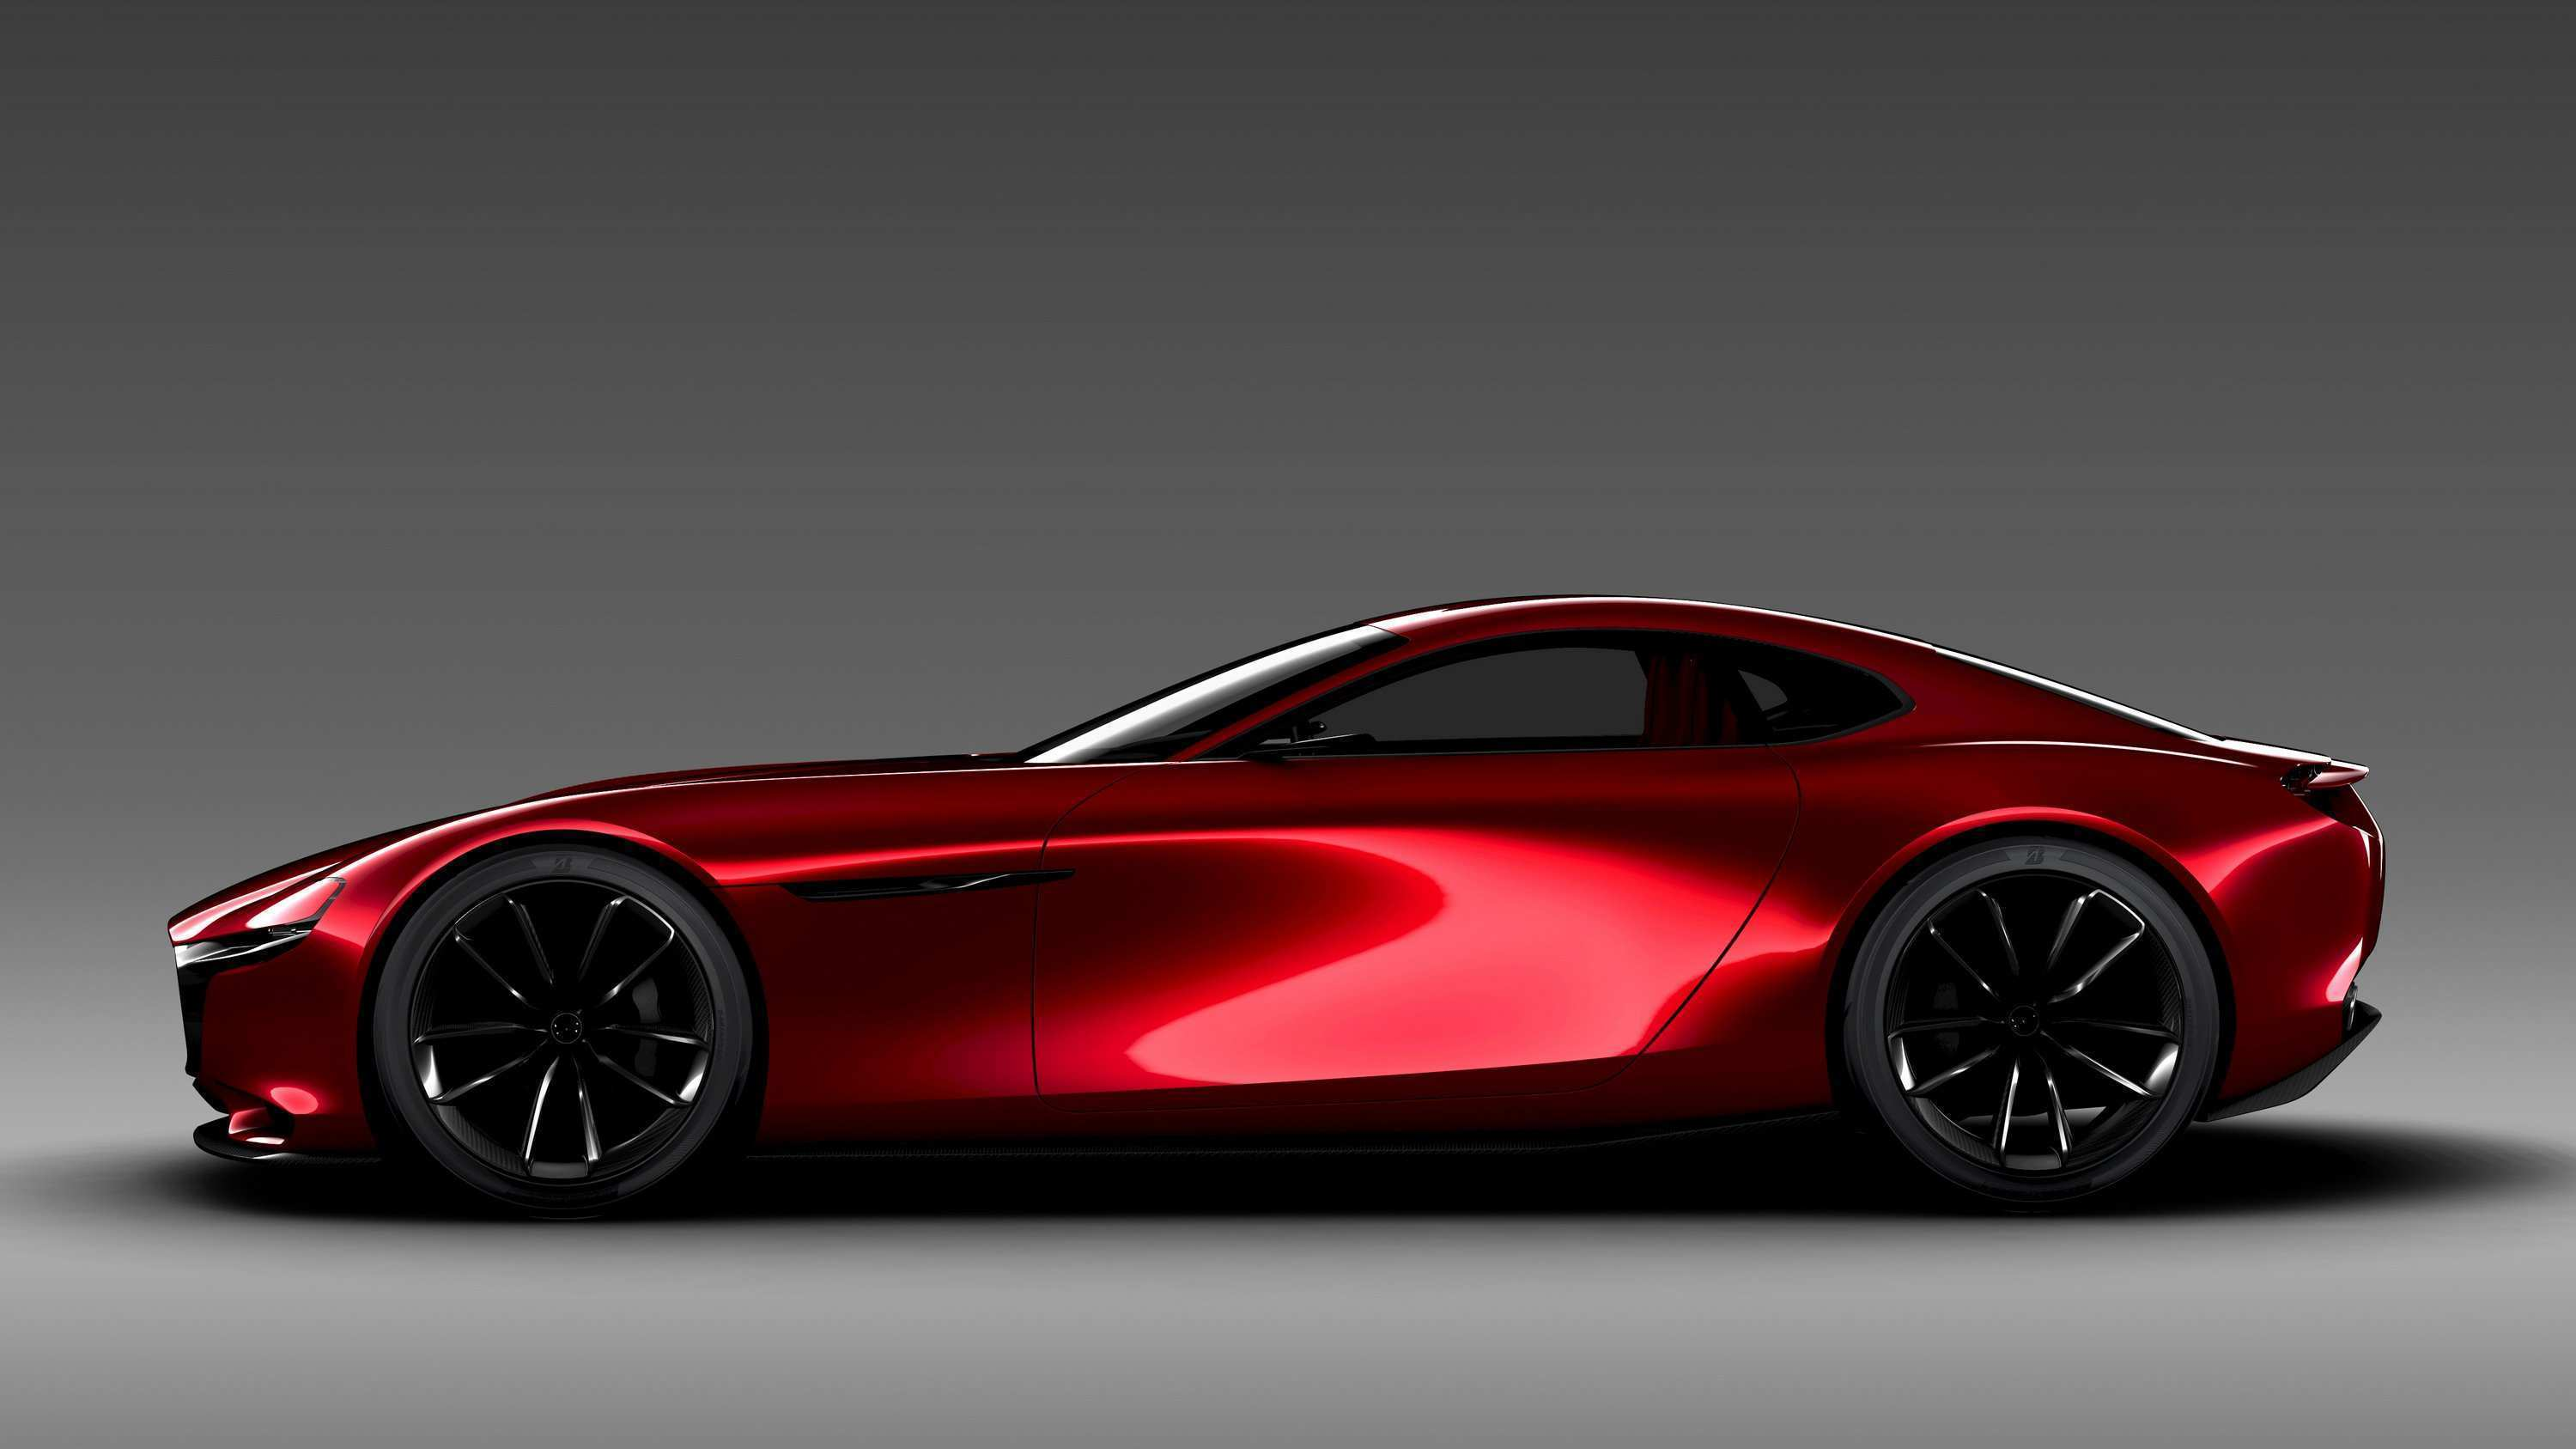 33 New 2020 Mazda RX7s Ratings for 2020 Mazda RX7s